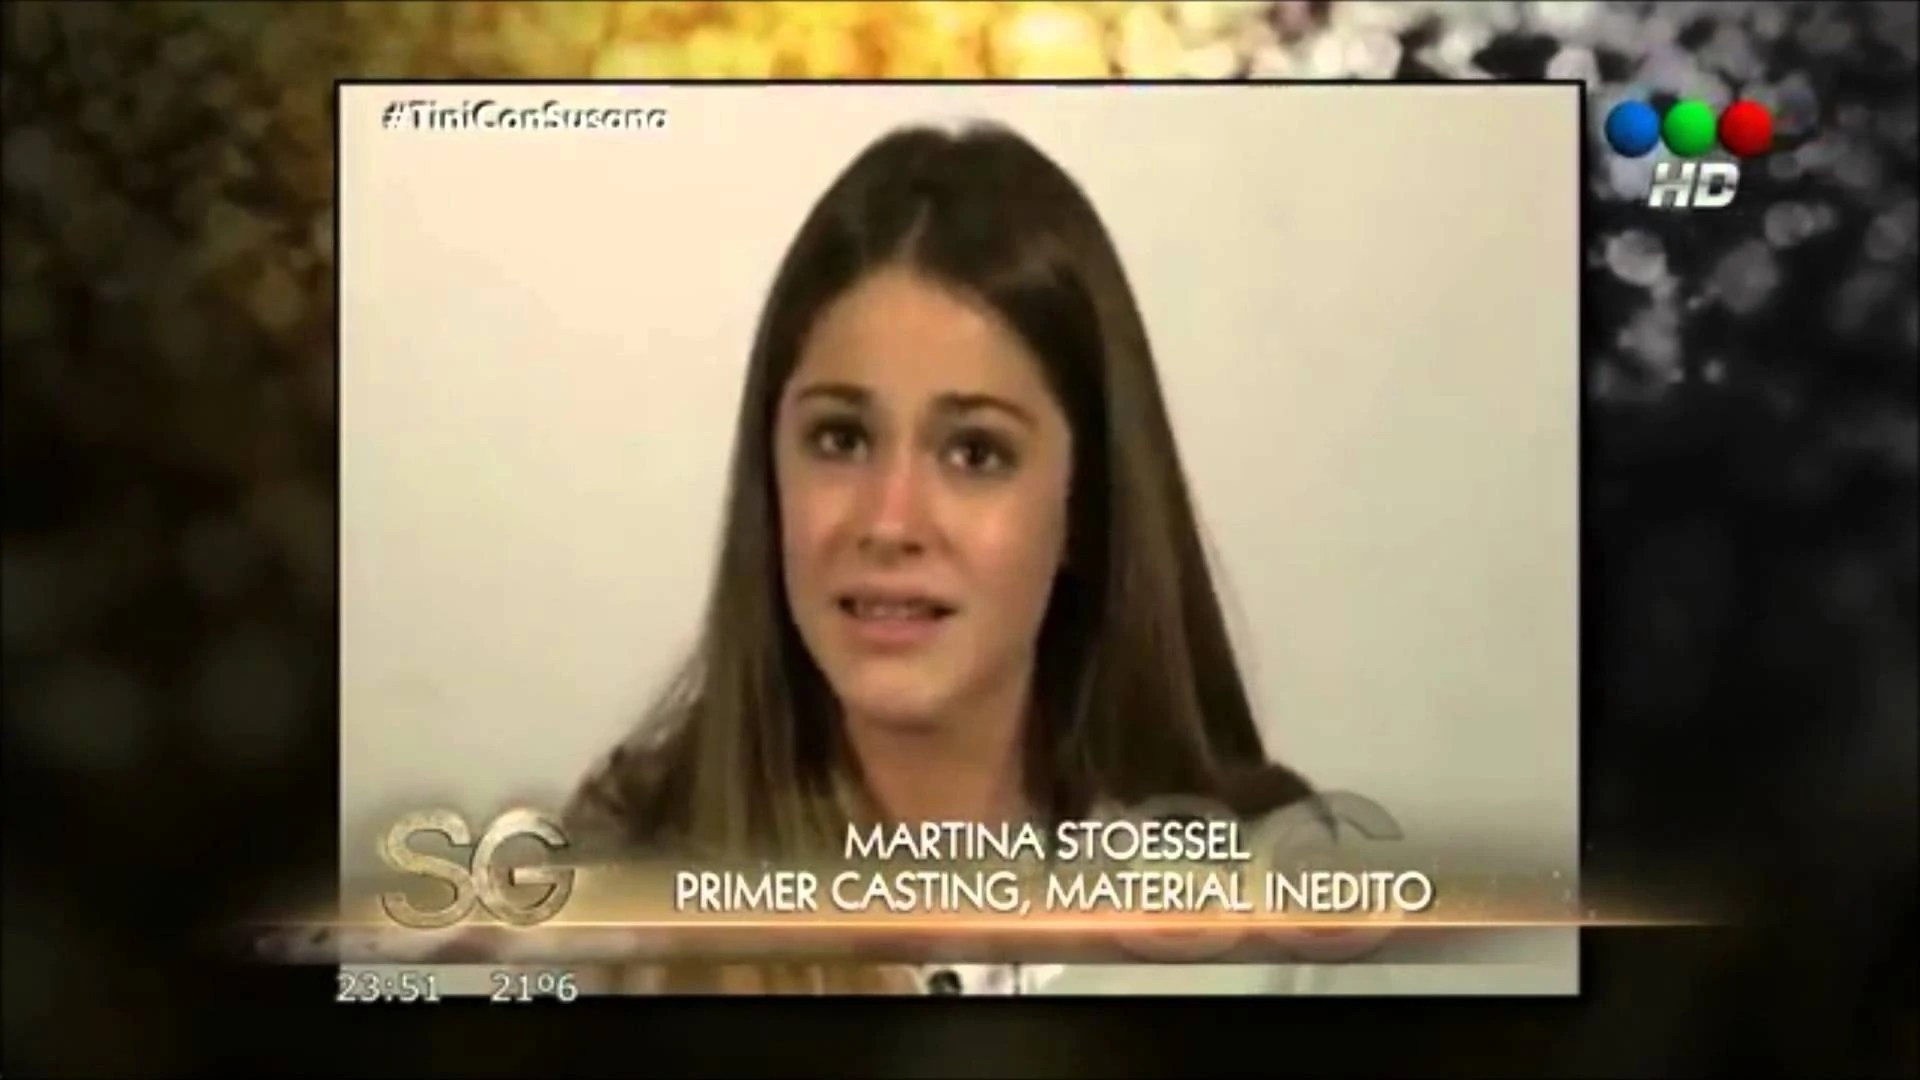 Libre Soy Martina Stoessel Martina Stoessel Gallery Early Years Tini Stoessel Wiki